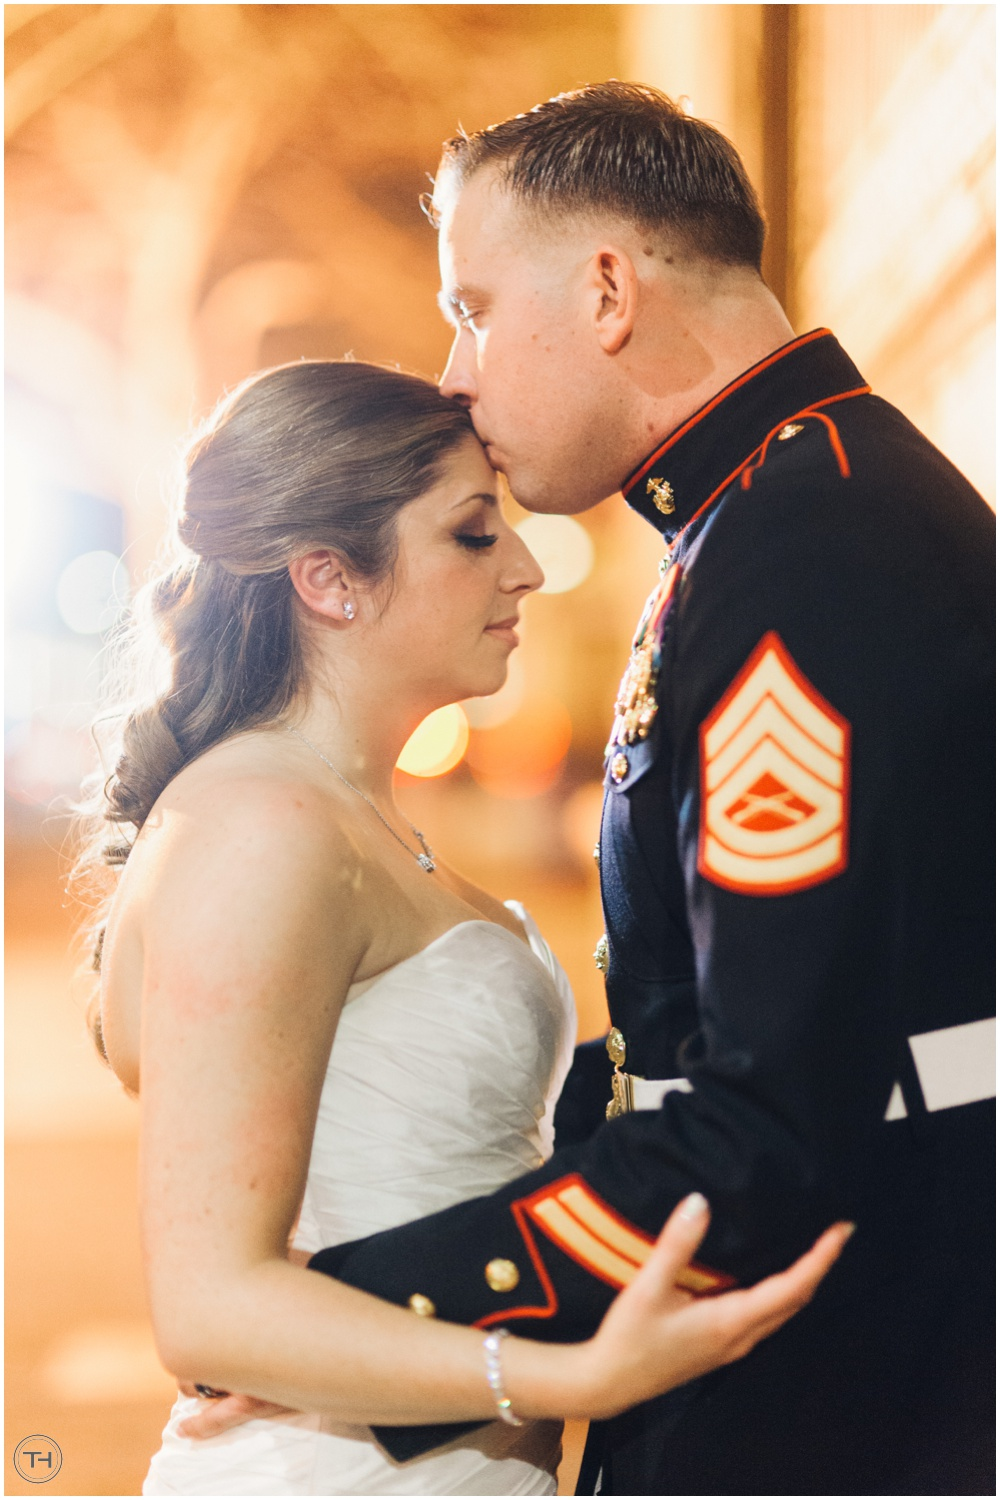 Thomas Julianna Military Wedding Photographer 58.jpg